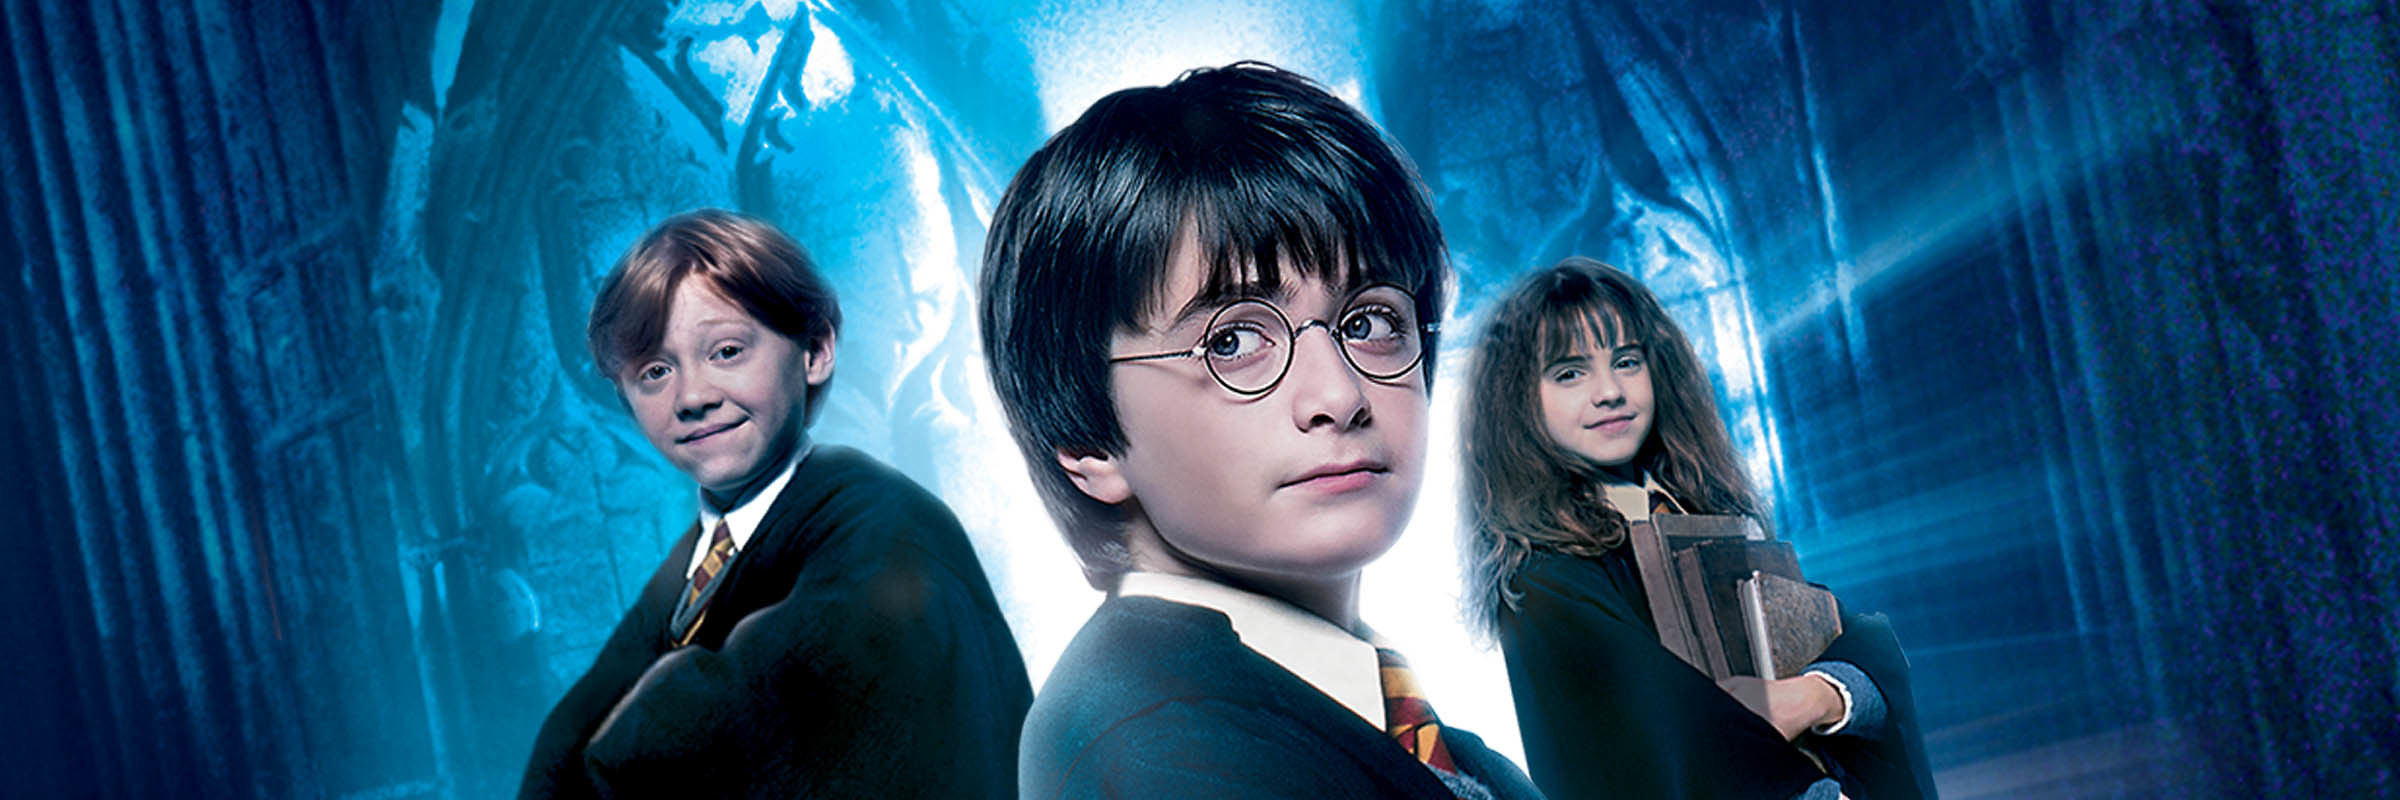 20 Reasons To Watch Harry Potter And The Sorcerer S Stone